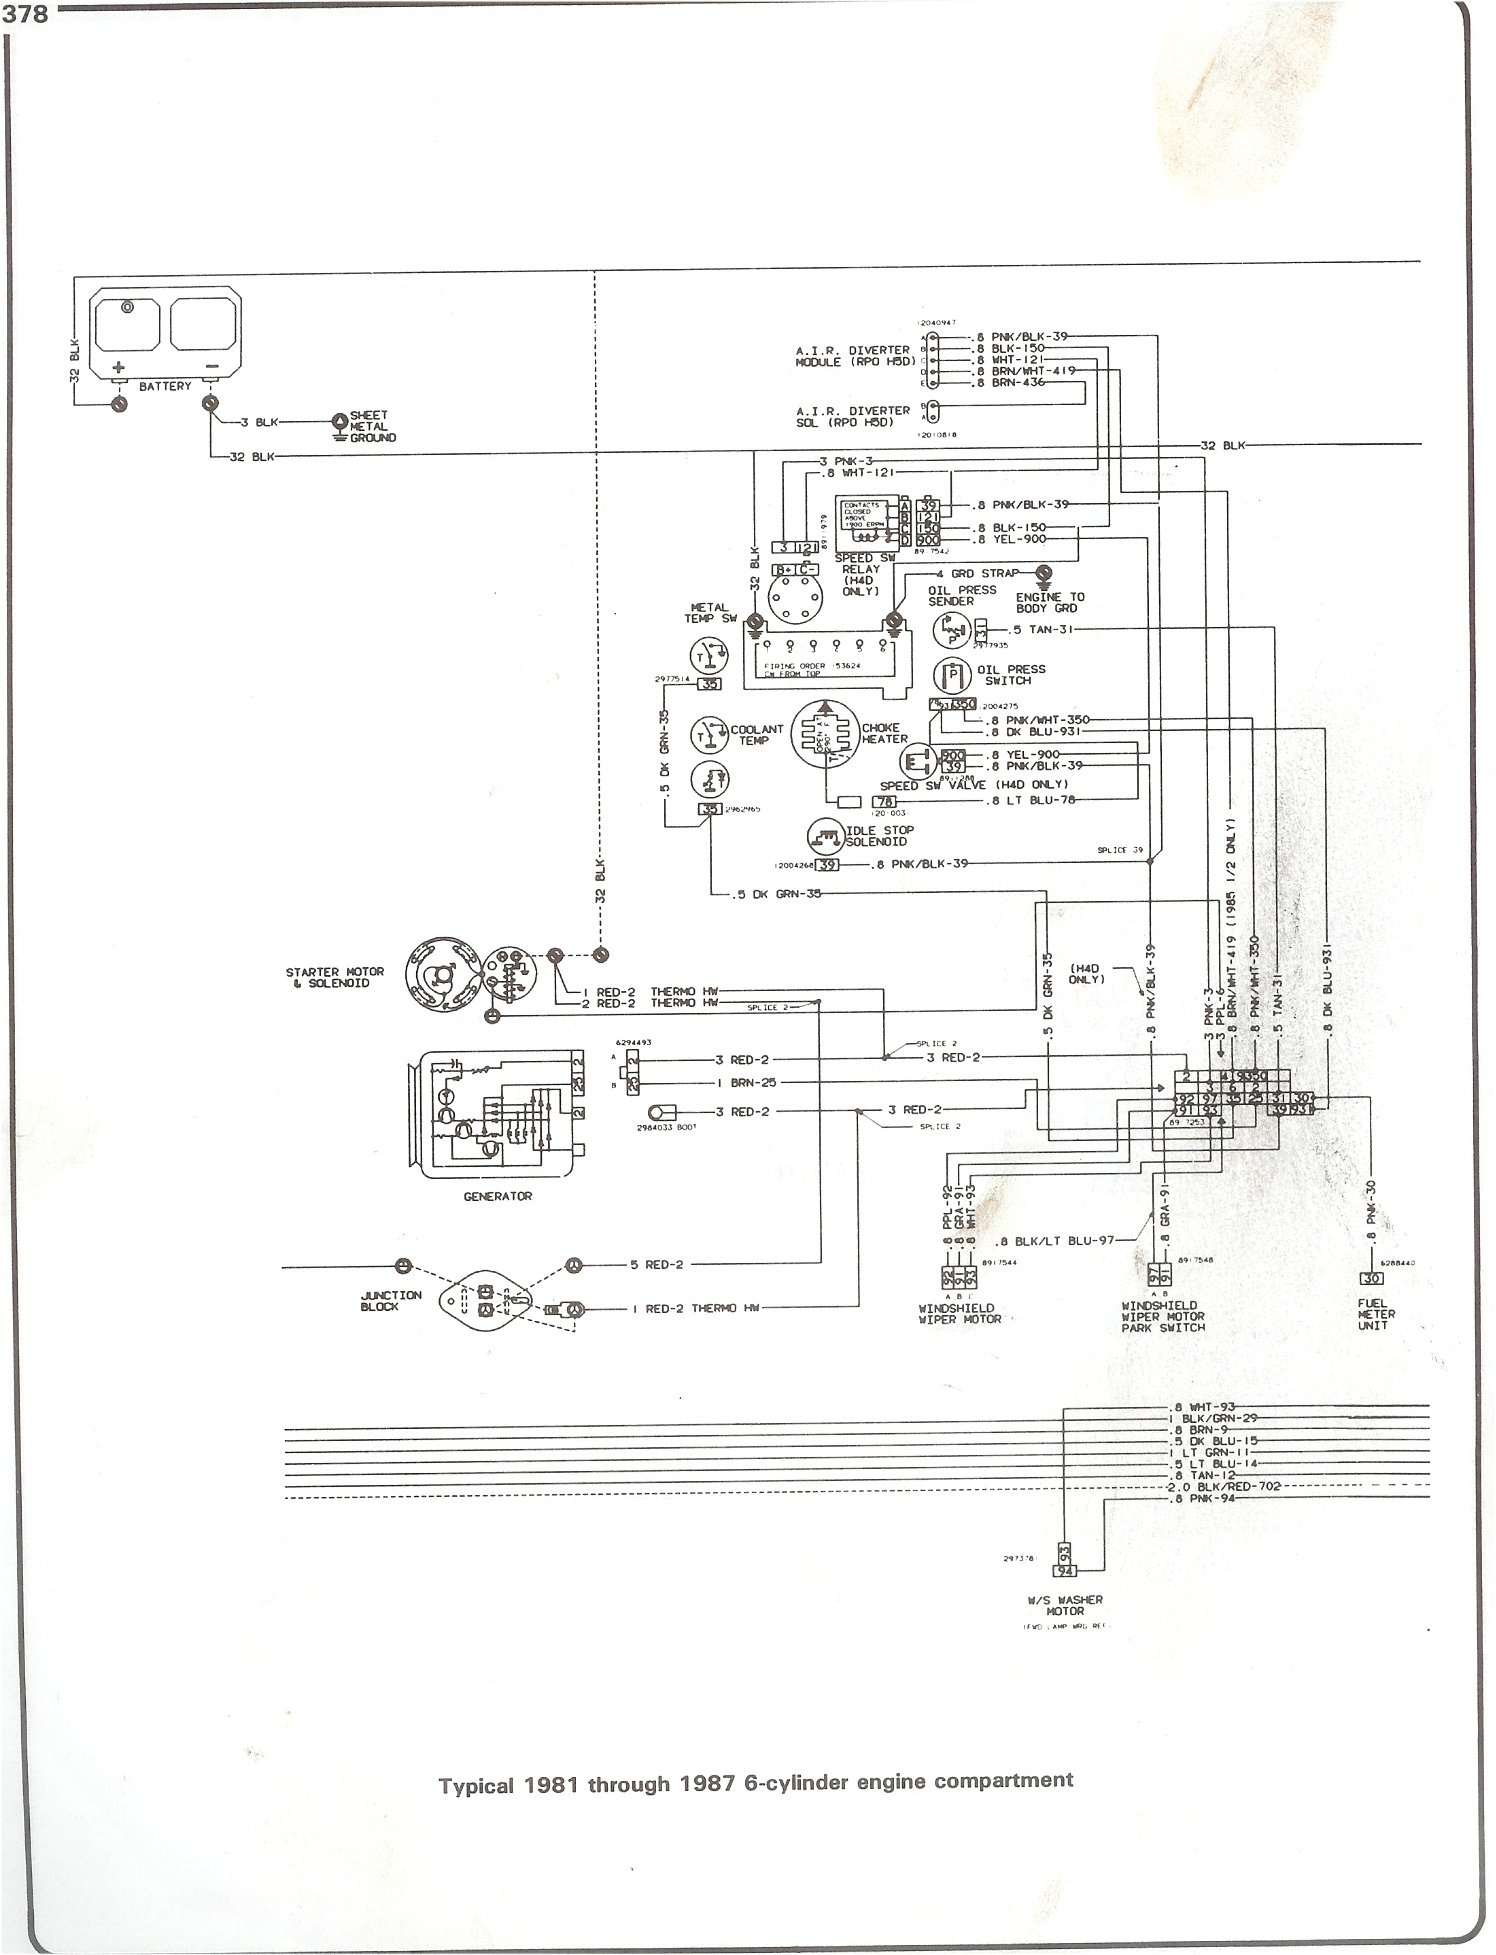 Complete 73 87 Wiring Diagrams 1995 Gm Pcm Pinout Diagram 1981 Camaro For Power 81 I6 Engine Compartment